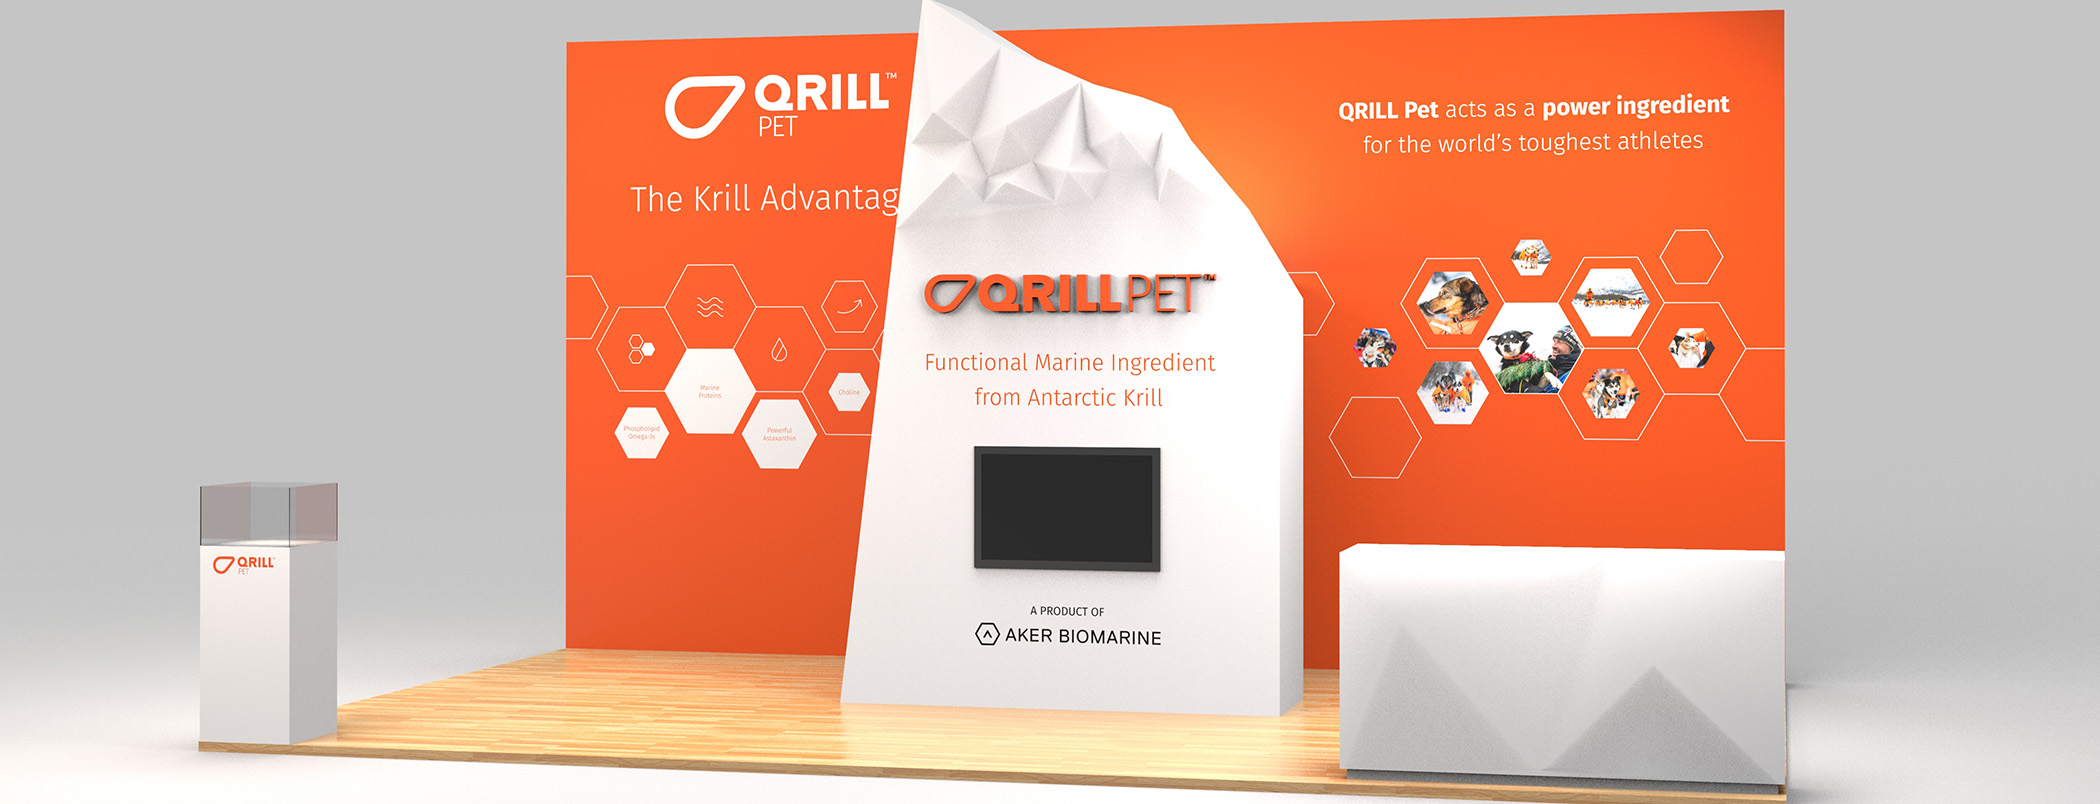 QRILL_Pet_Tradeshow_02 Booth Mock-up